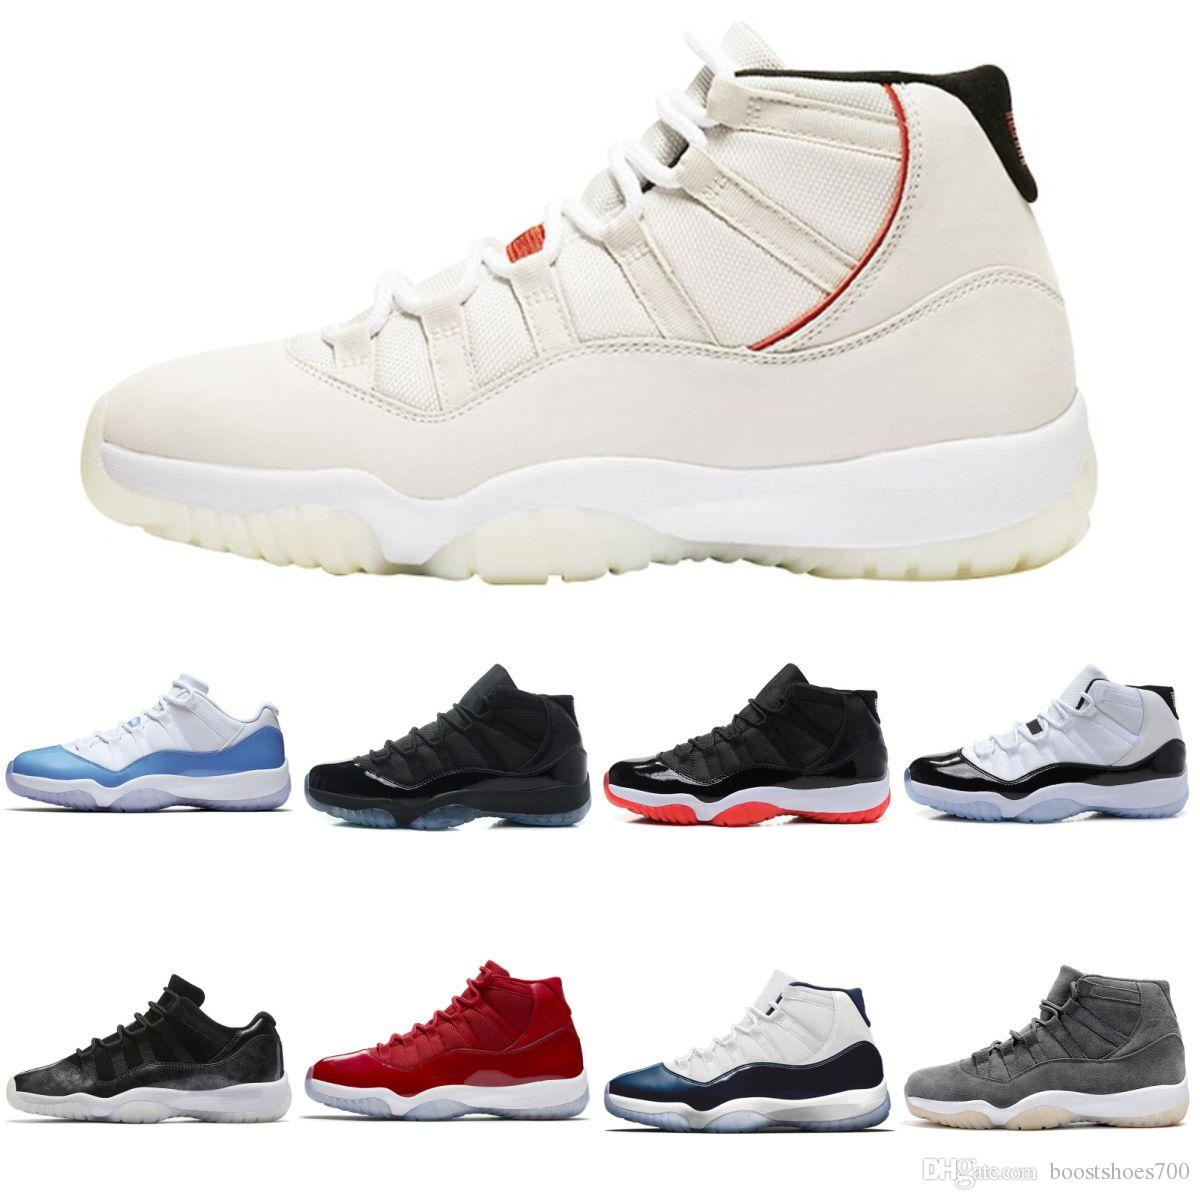 2f2cbb48eda515 Platinum Tint Concord 45 11 XI 11s Cap And Gown Mens Basketball Shoes Prom  Night Gym Bred Barons Space Jams Sneakers Designer Shoes Jordans Sneakers  ...